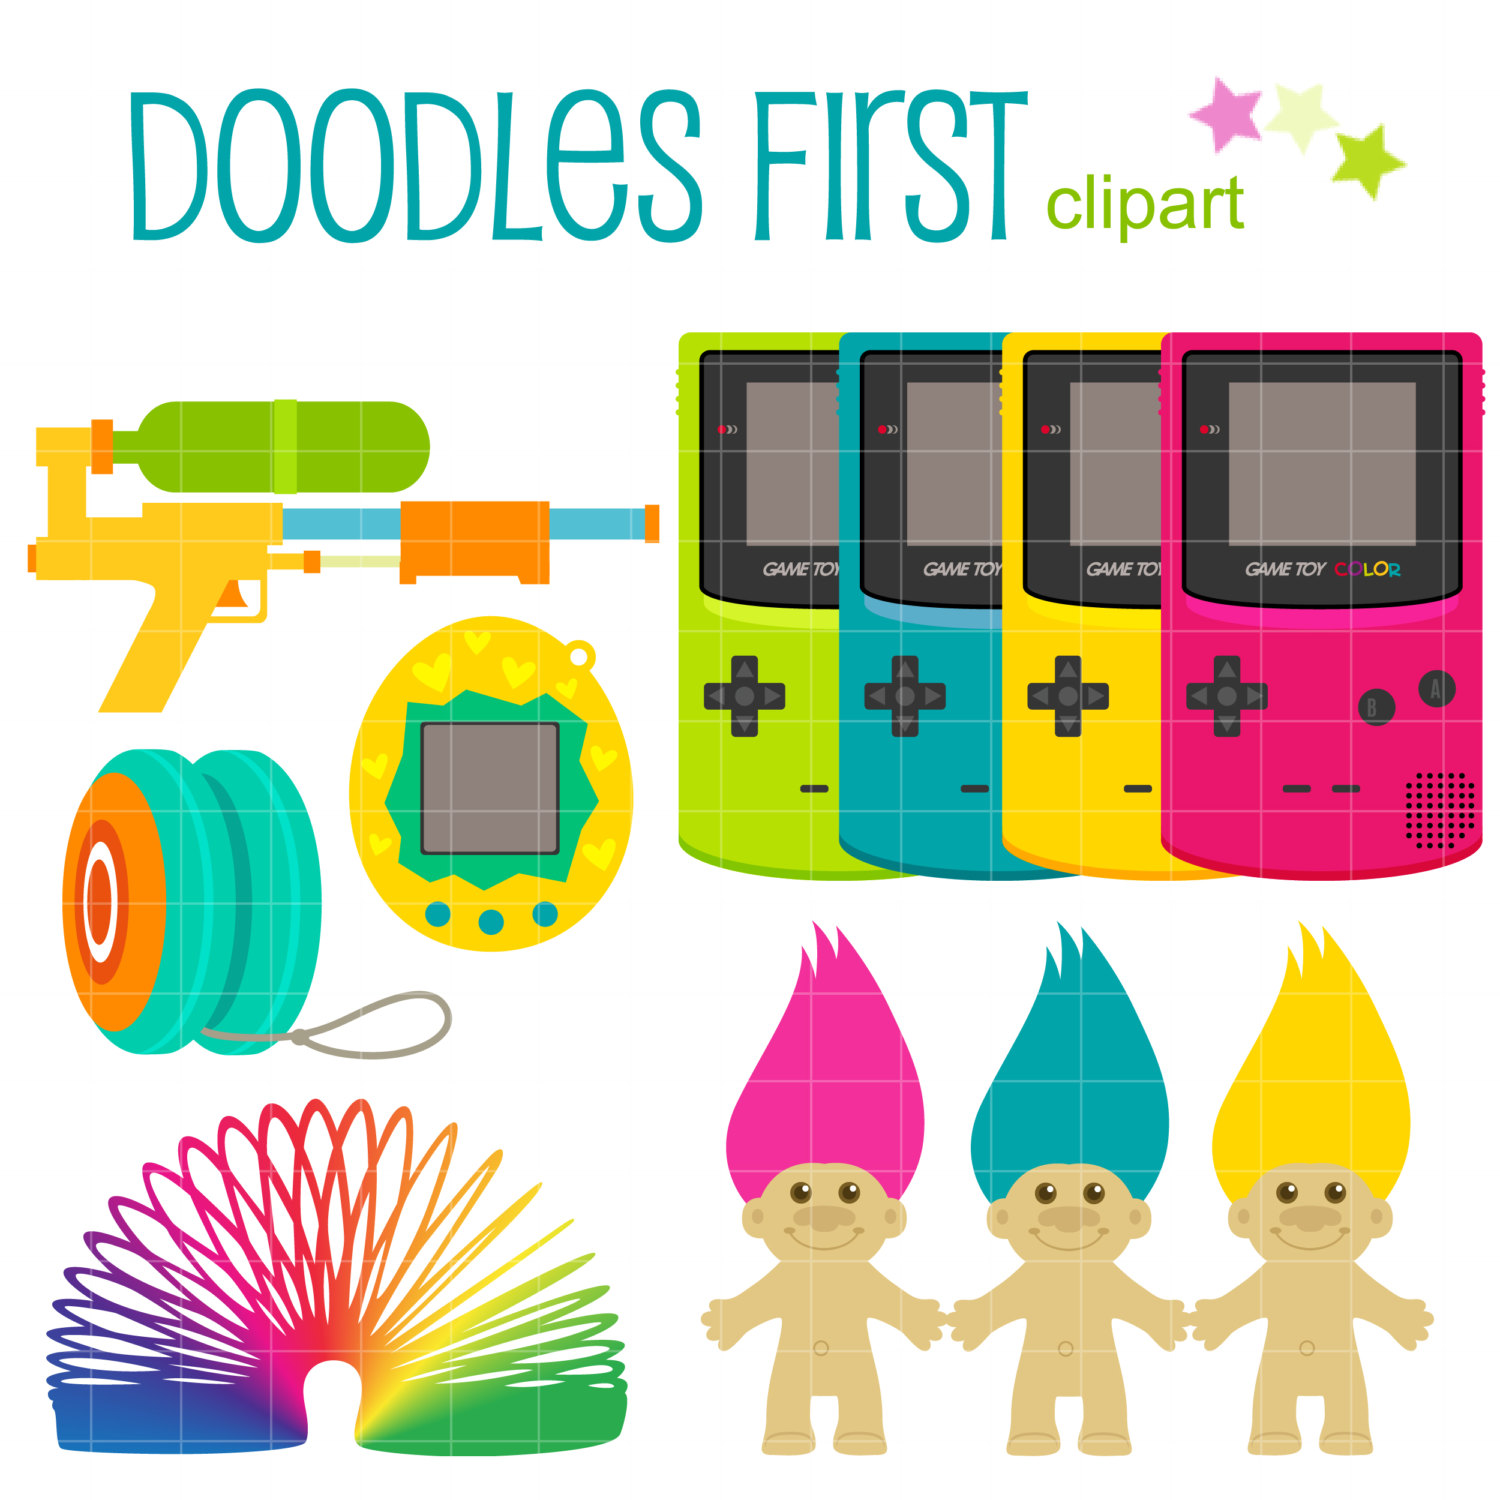 s images kid. 90s clipart 90 phone